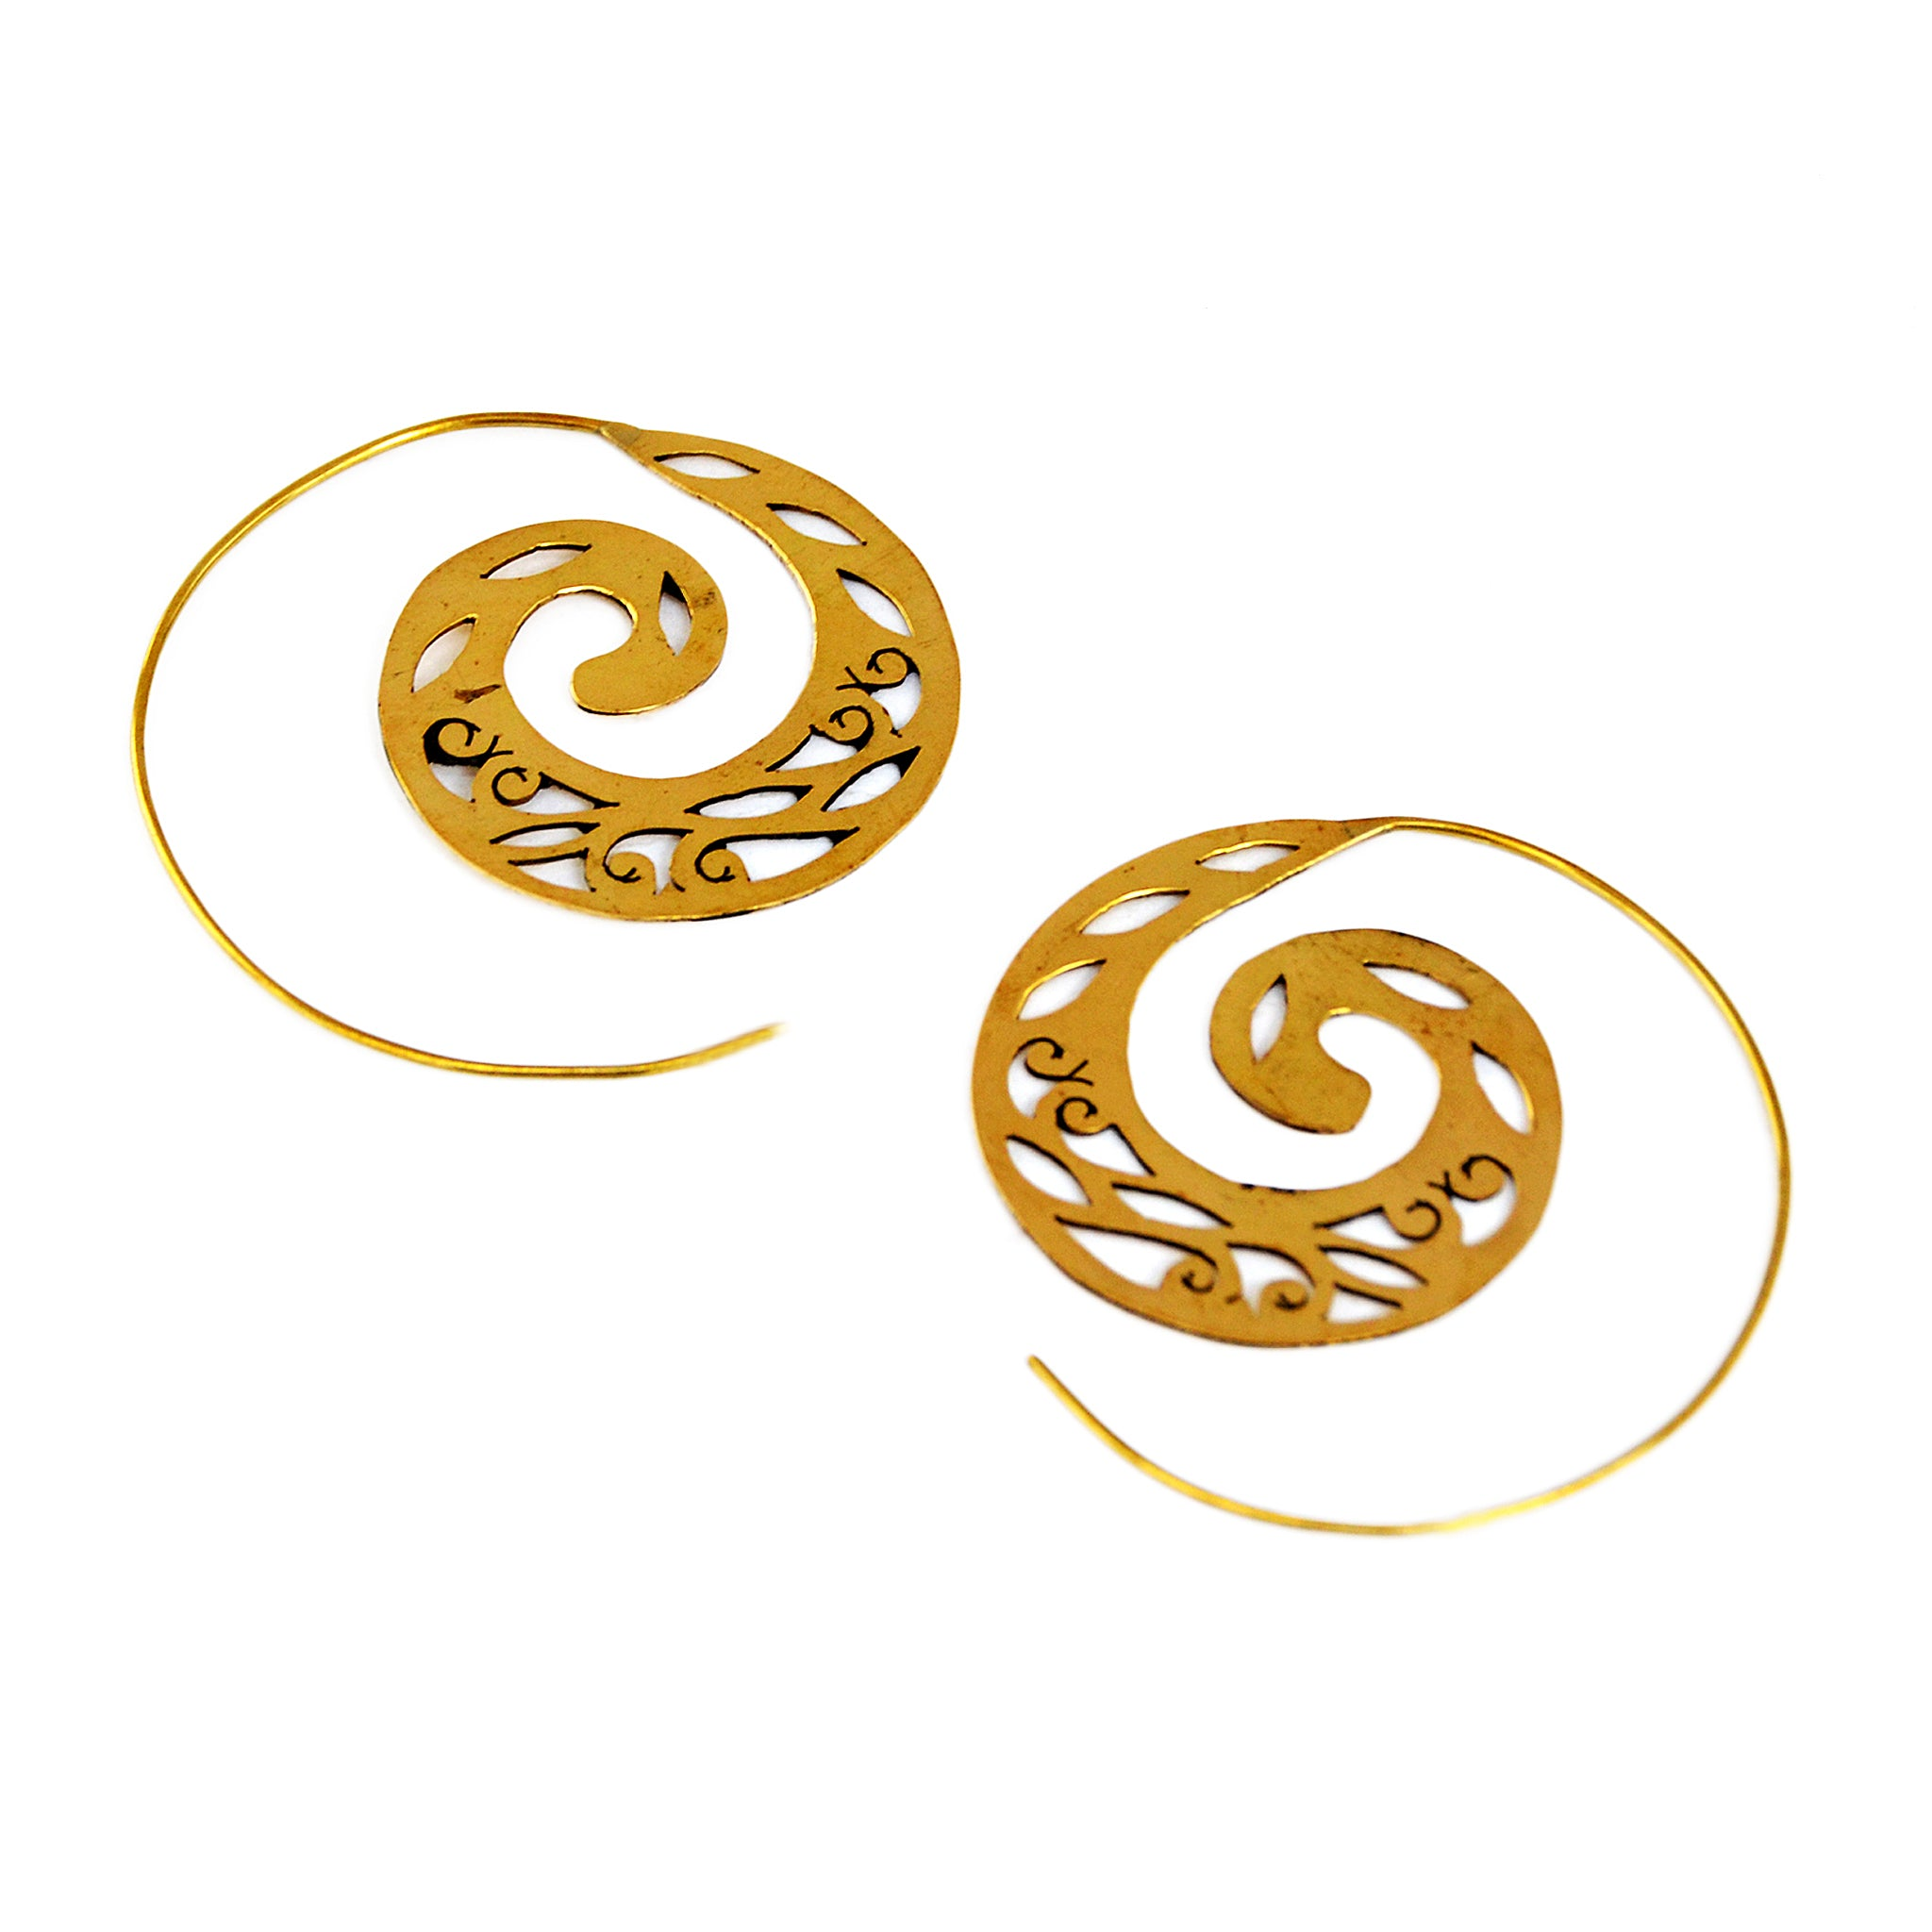 Sawed Spiral Earrings